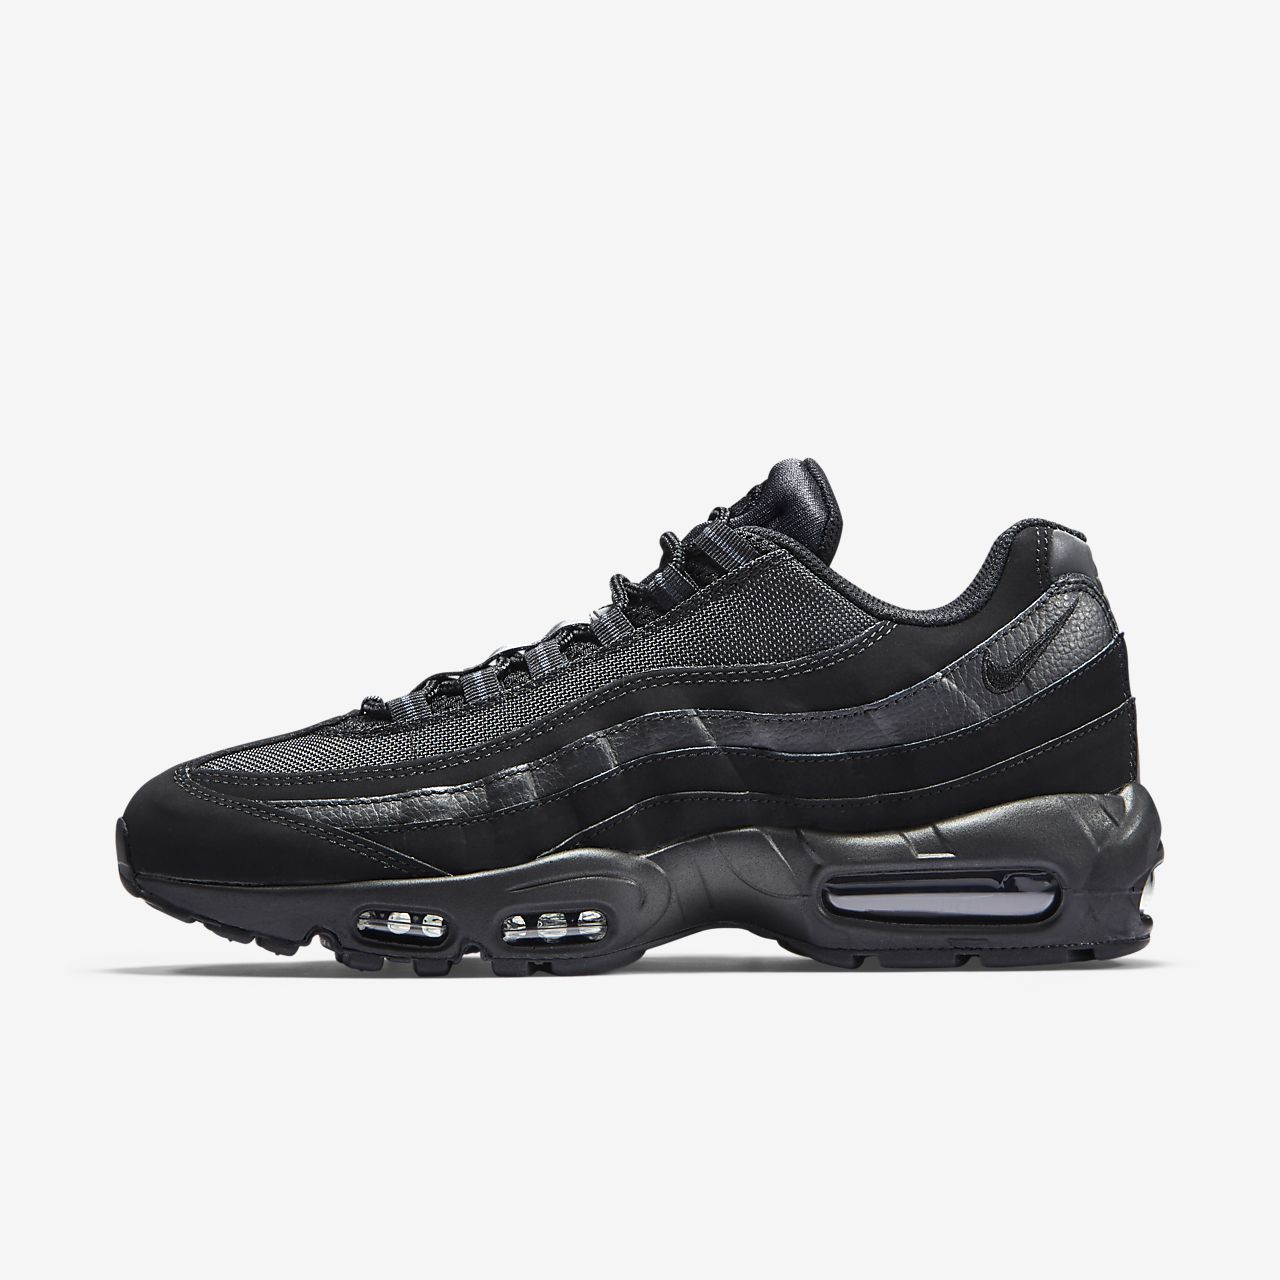 hot sale online 1afe8 6f922 Men s Shoe. Nike Air Max 95